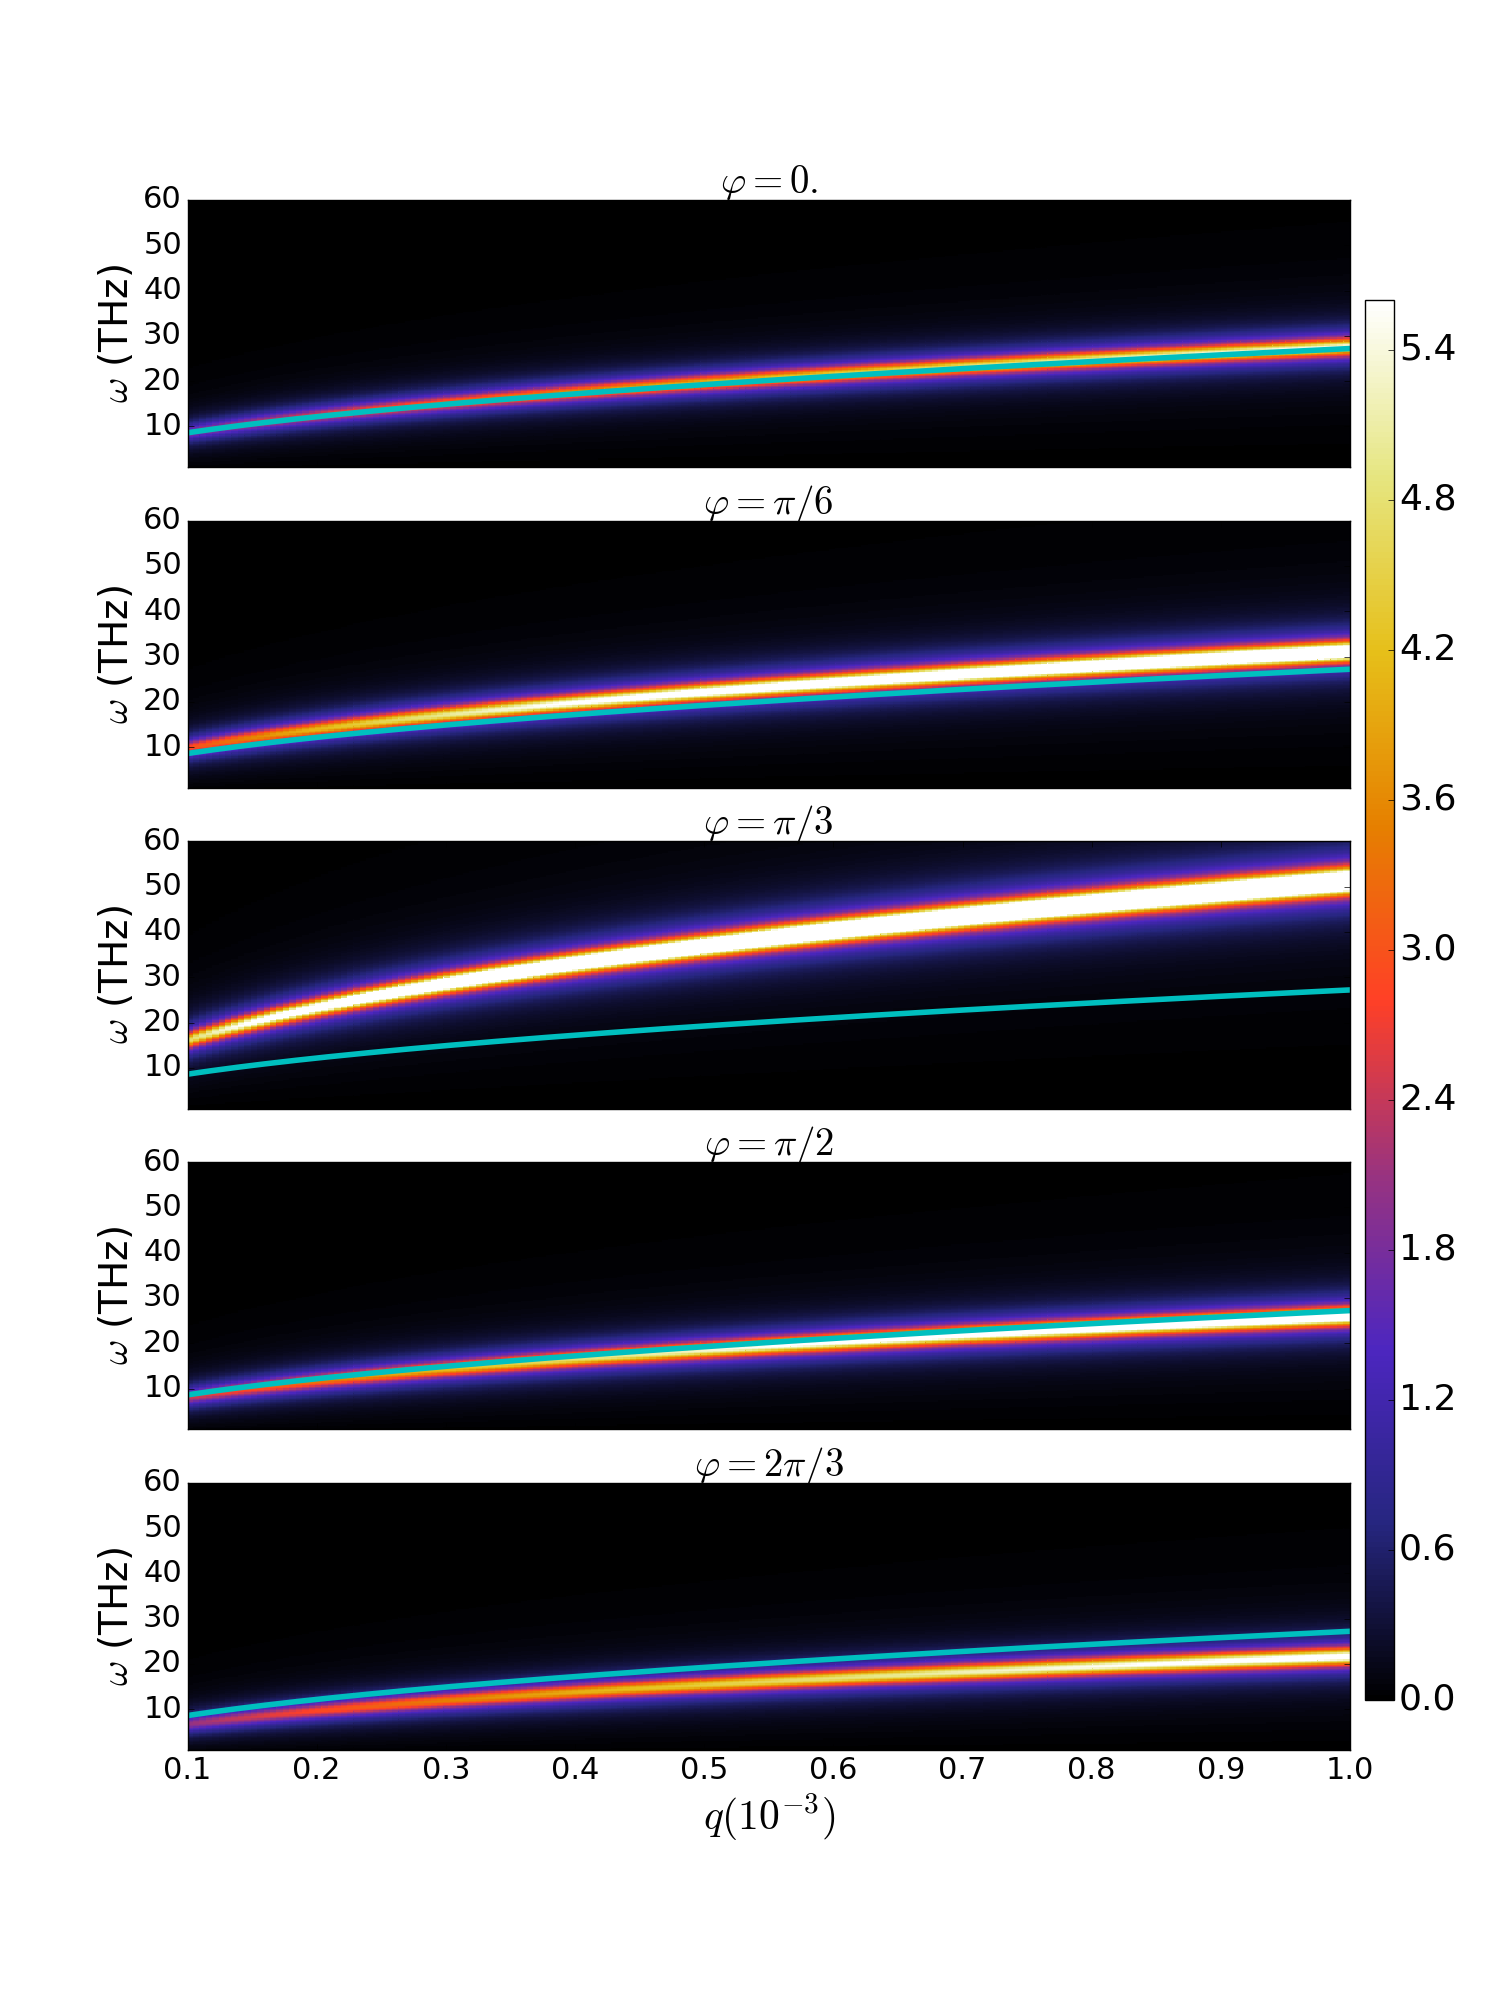 (Color on-line.) Loss function for different polarizations of the probe field as function of the dimensionless wavenumber (multiplied by